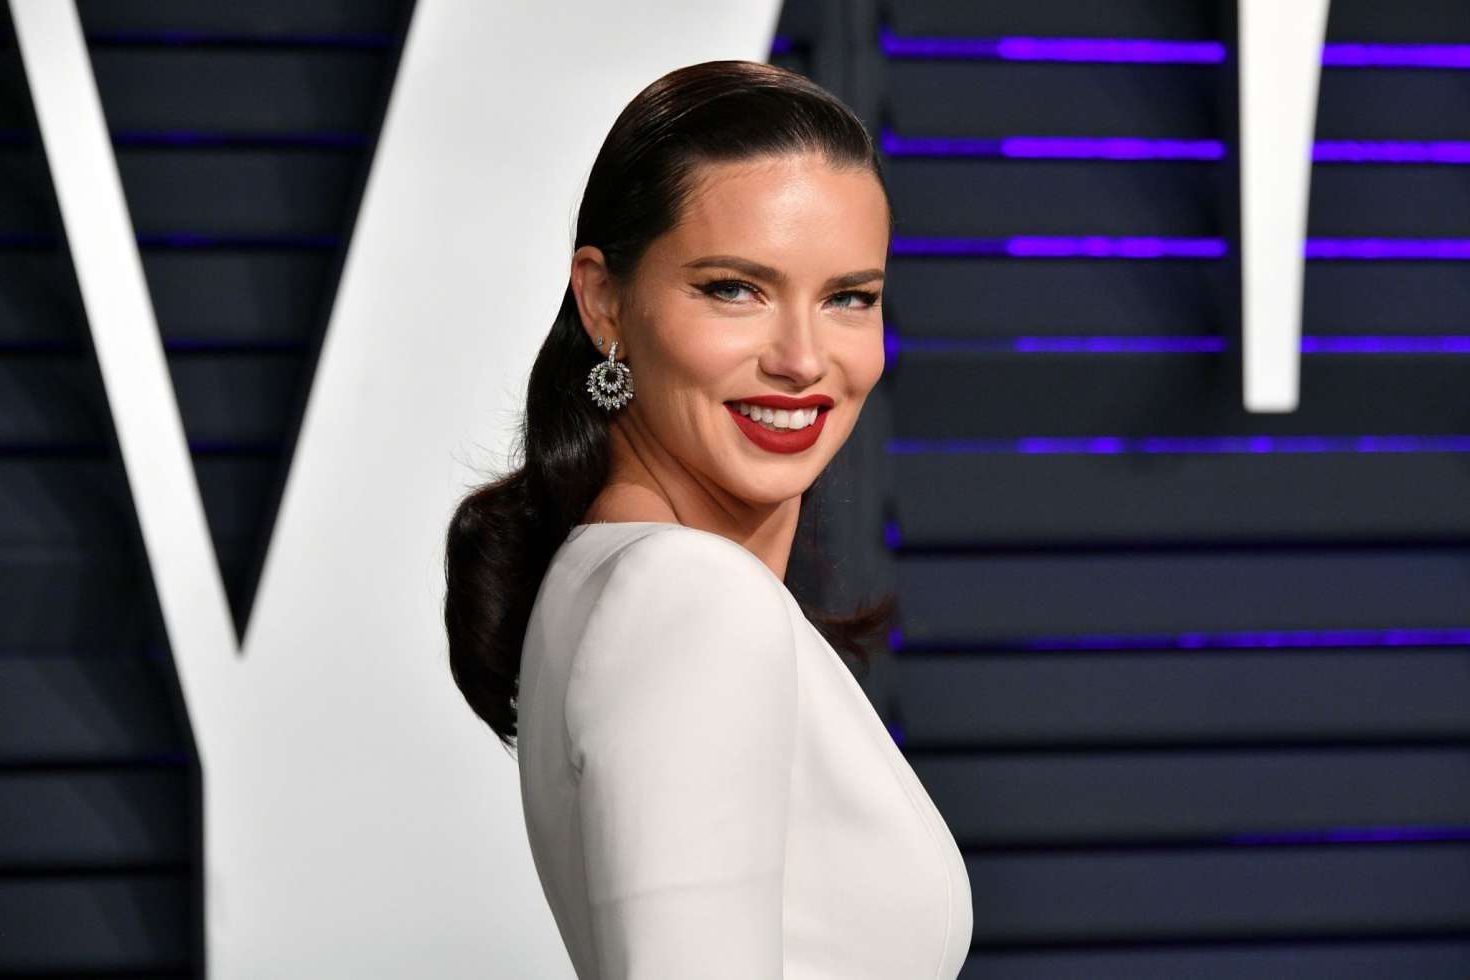 Adriana Lima - fashion model at Vanity Fair Oscar Party